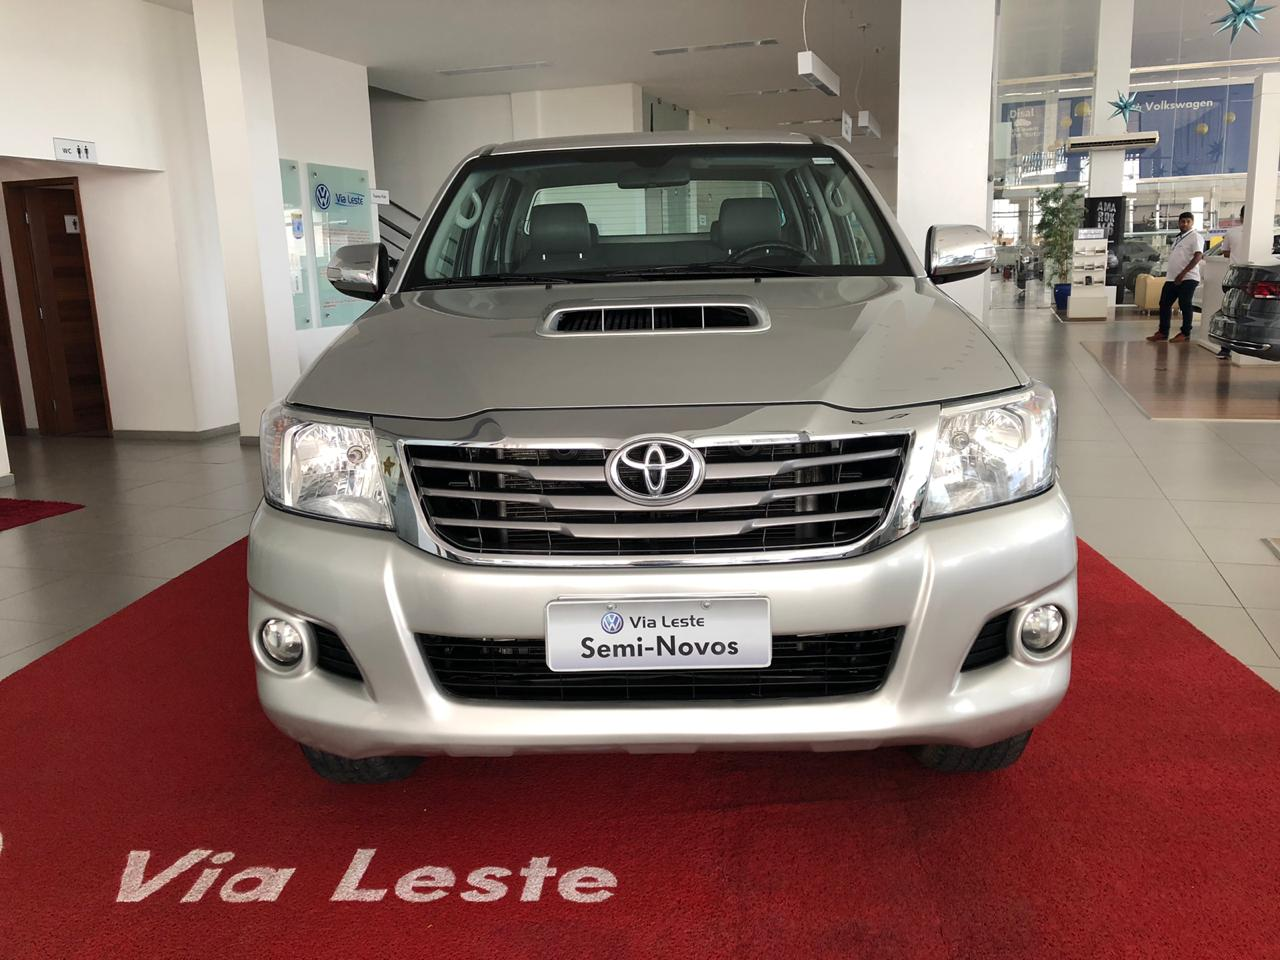 TOYOTA HILUX SRV <br>R$ 119.900,00